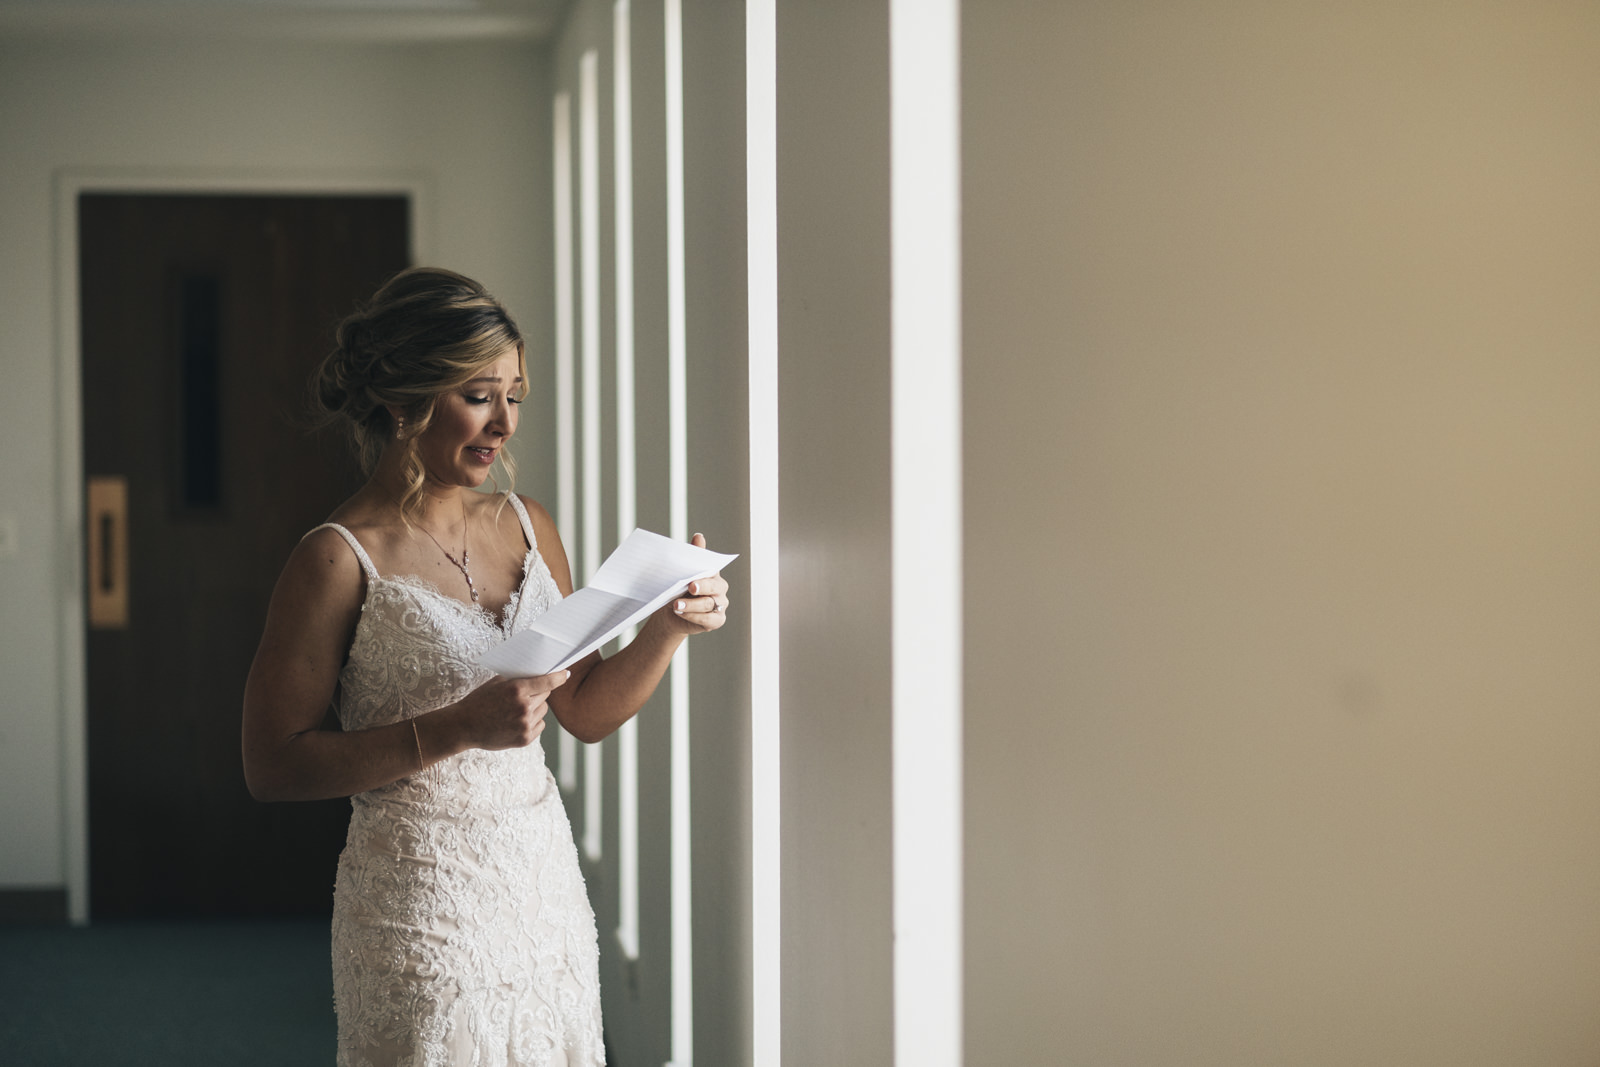 Emotional bride reads letter from her groom before the wedding ceremony.